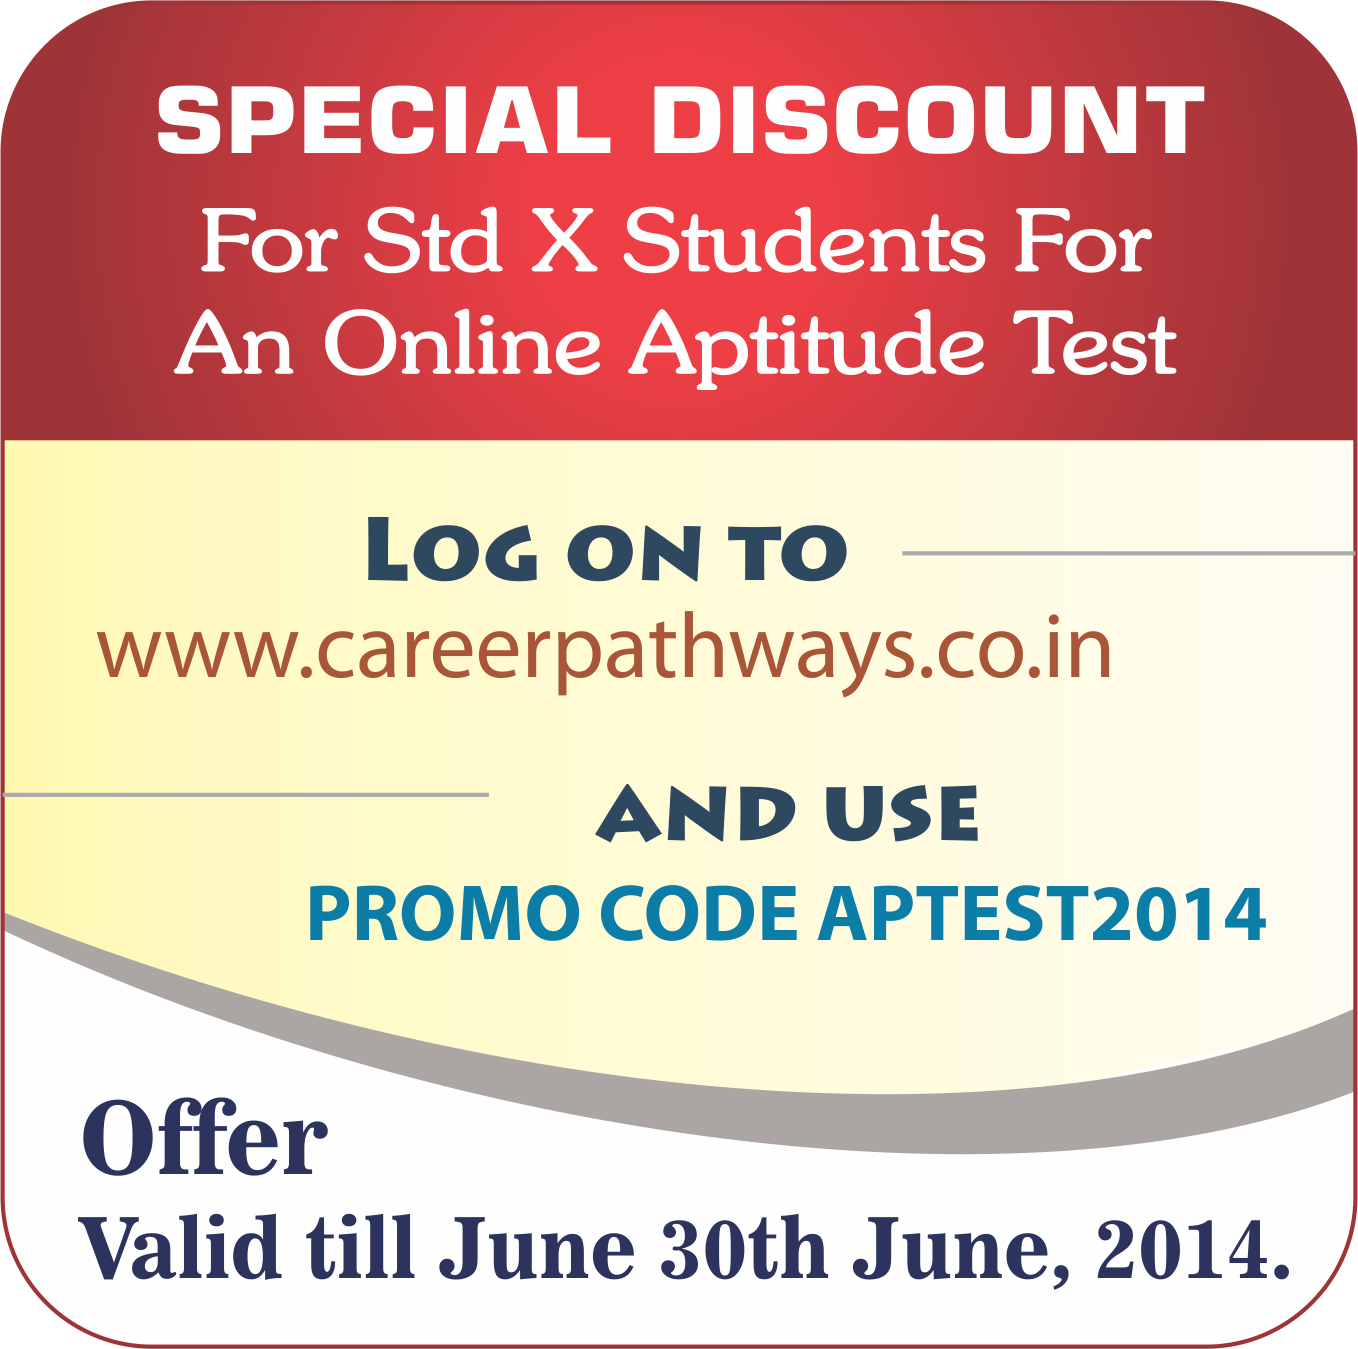 online career aptitude test aptitude test online aptitude test special discount for std x students for an online aptitude test